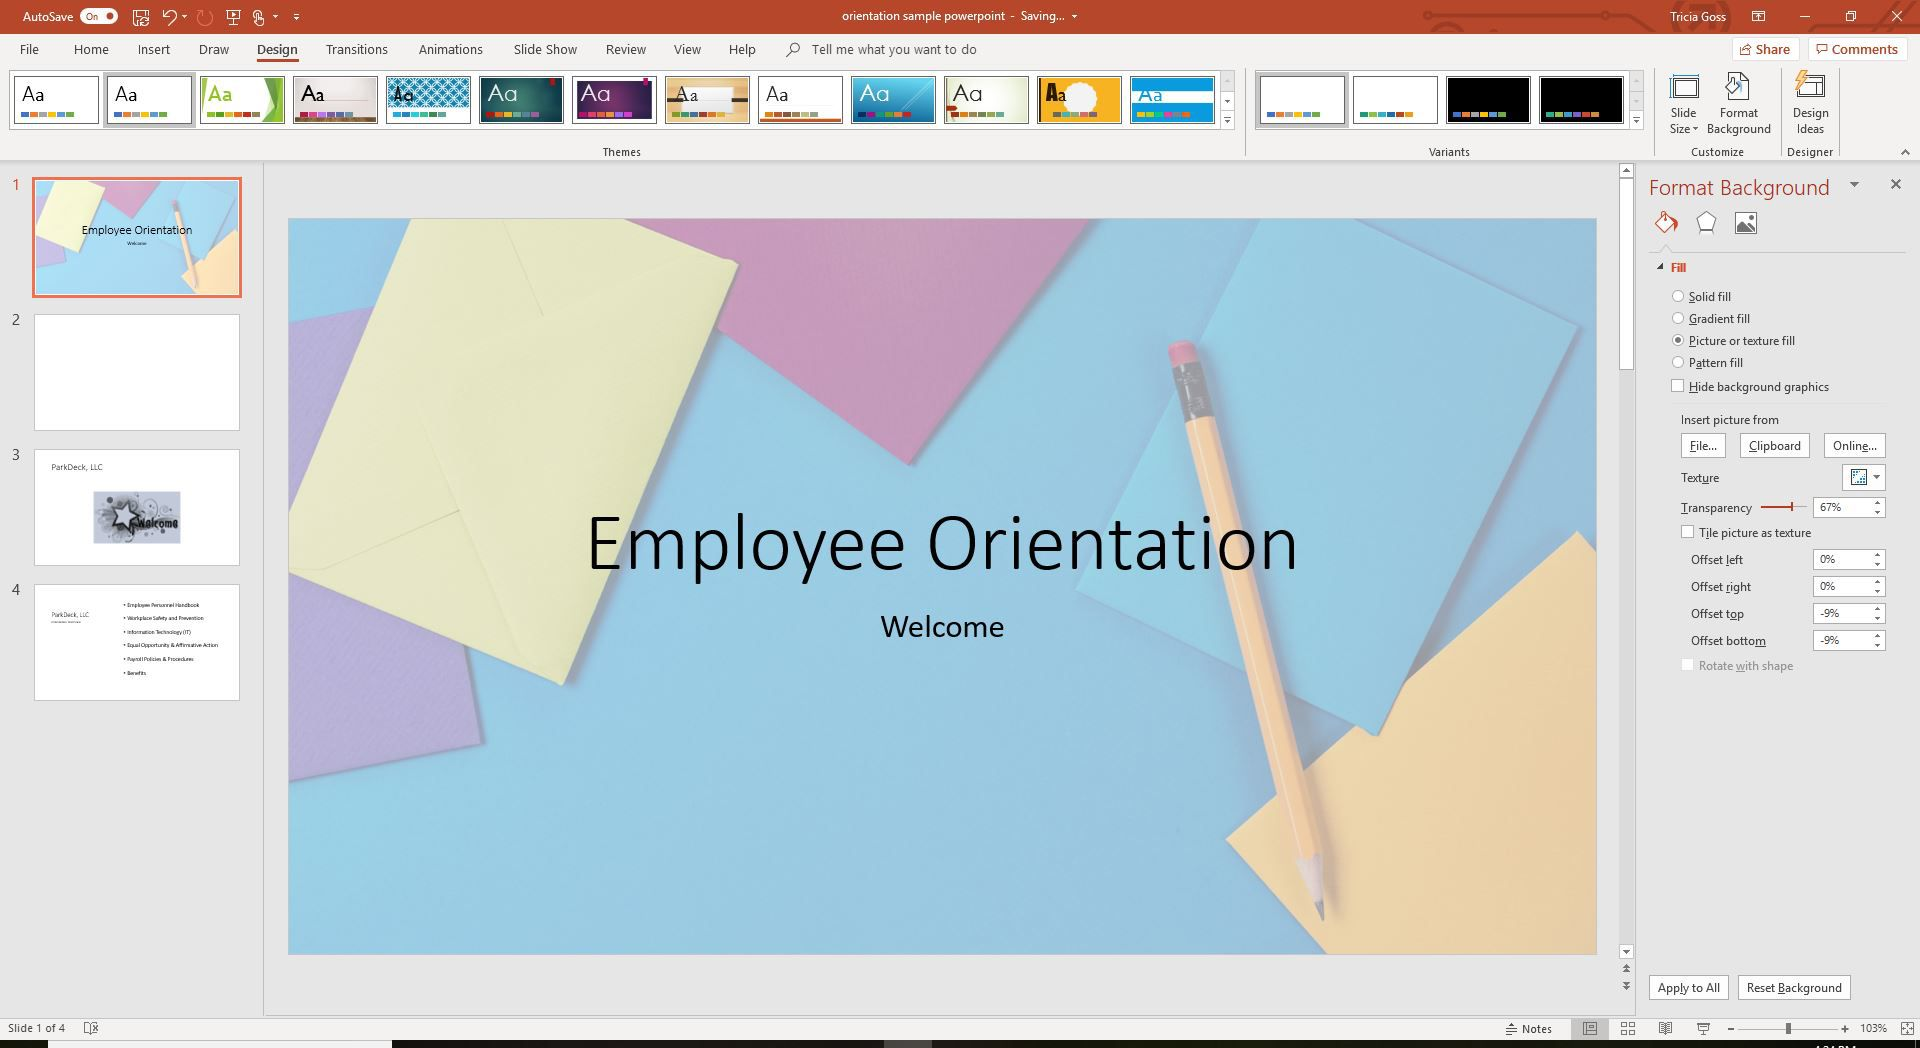 A screenshot showing the Set transparency option for background image in PowerPoint.